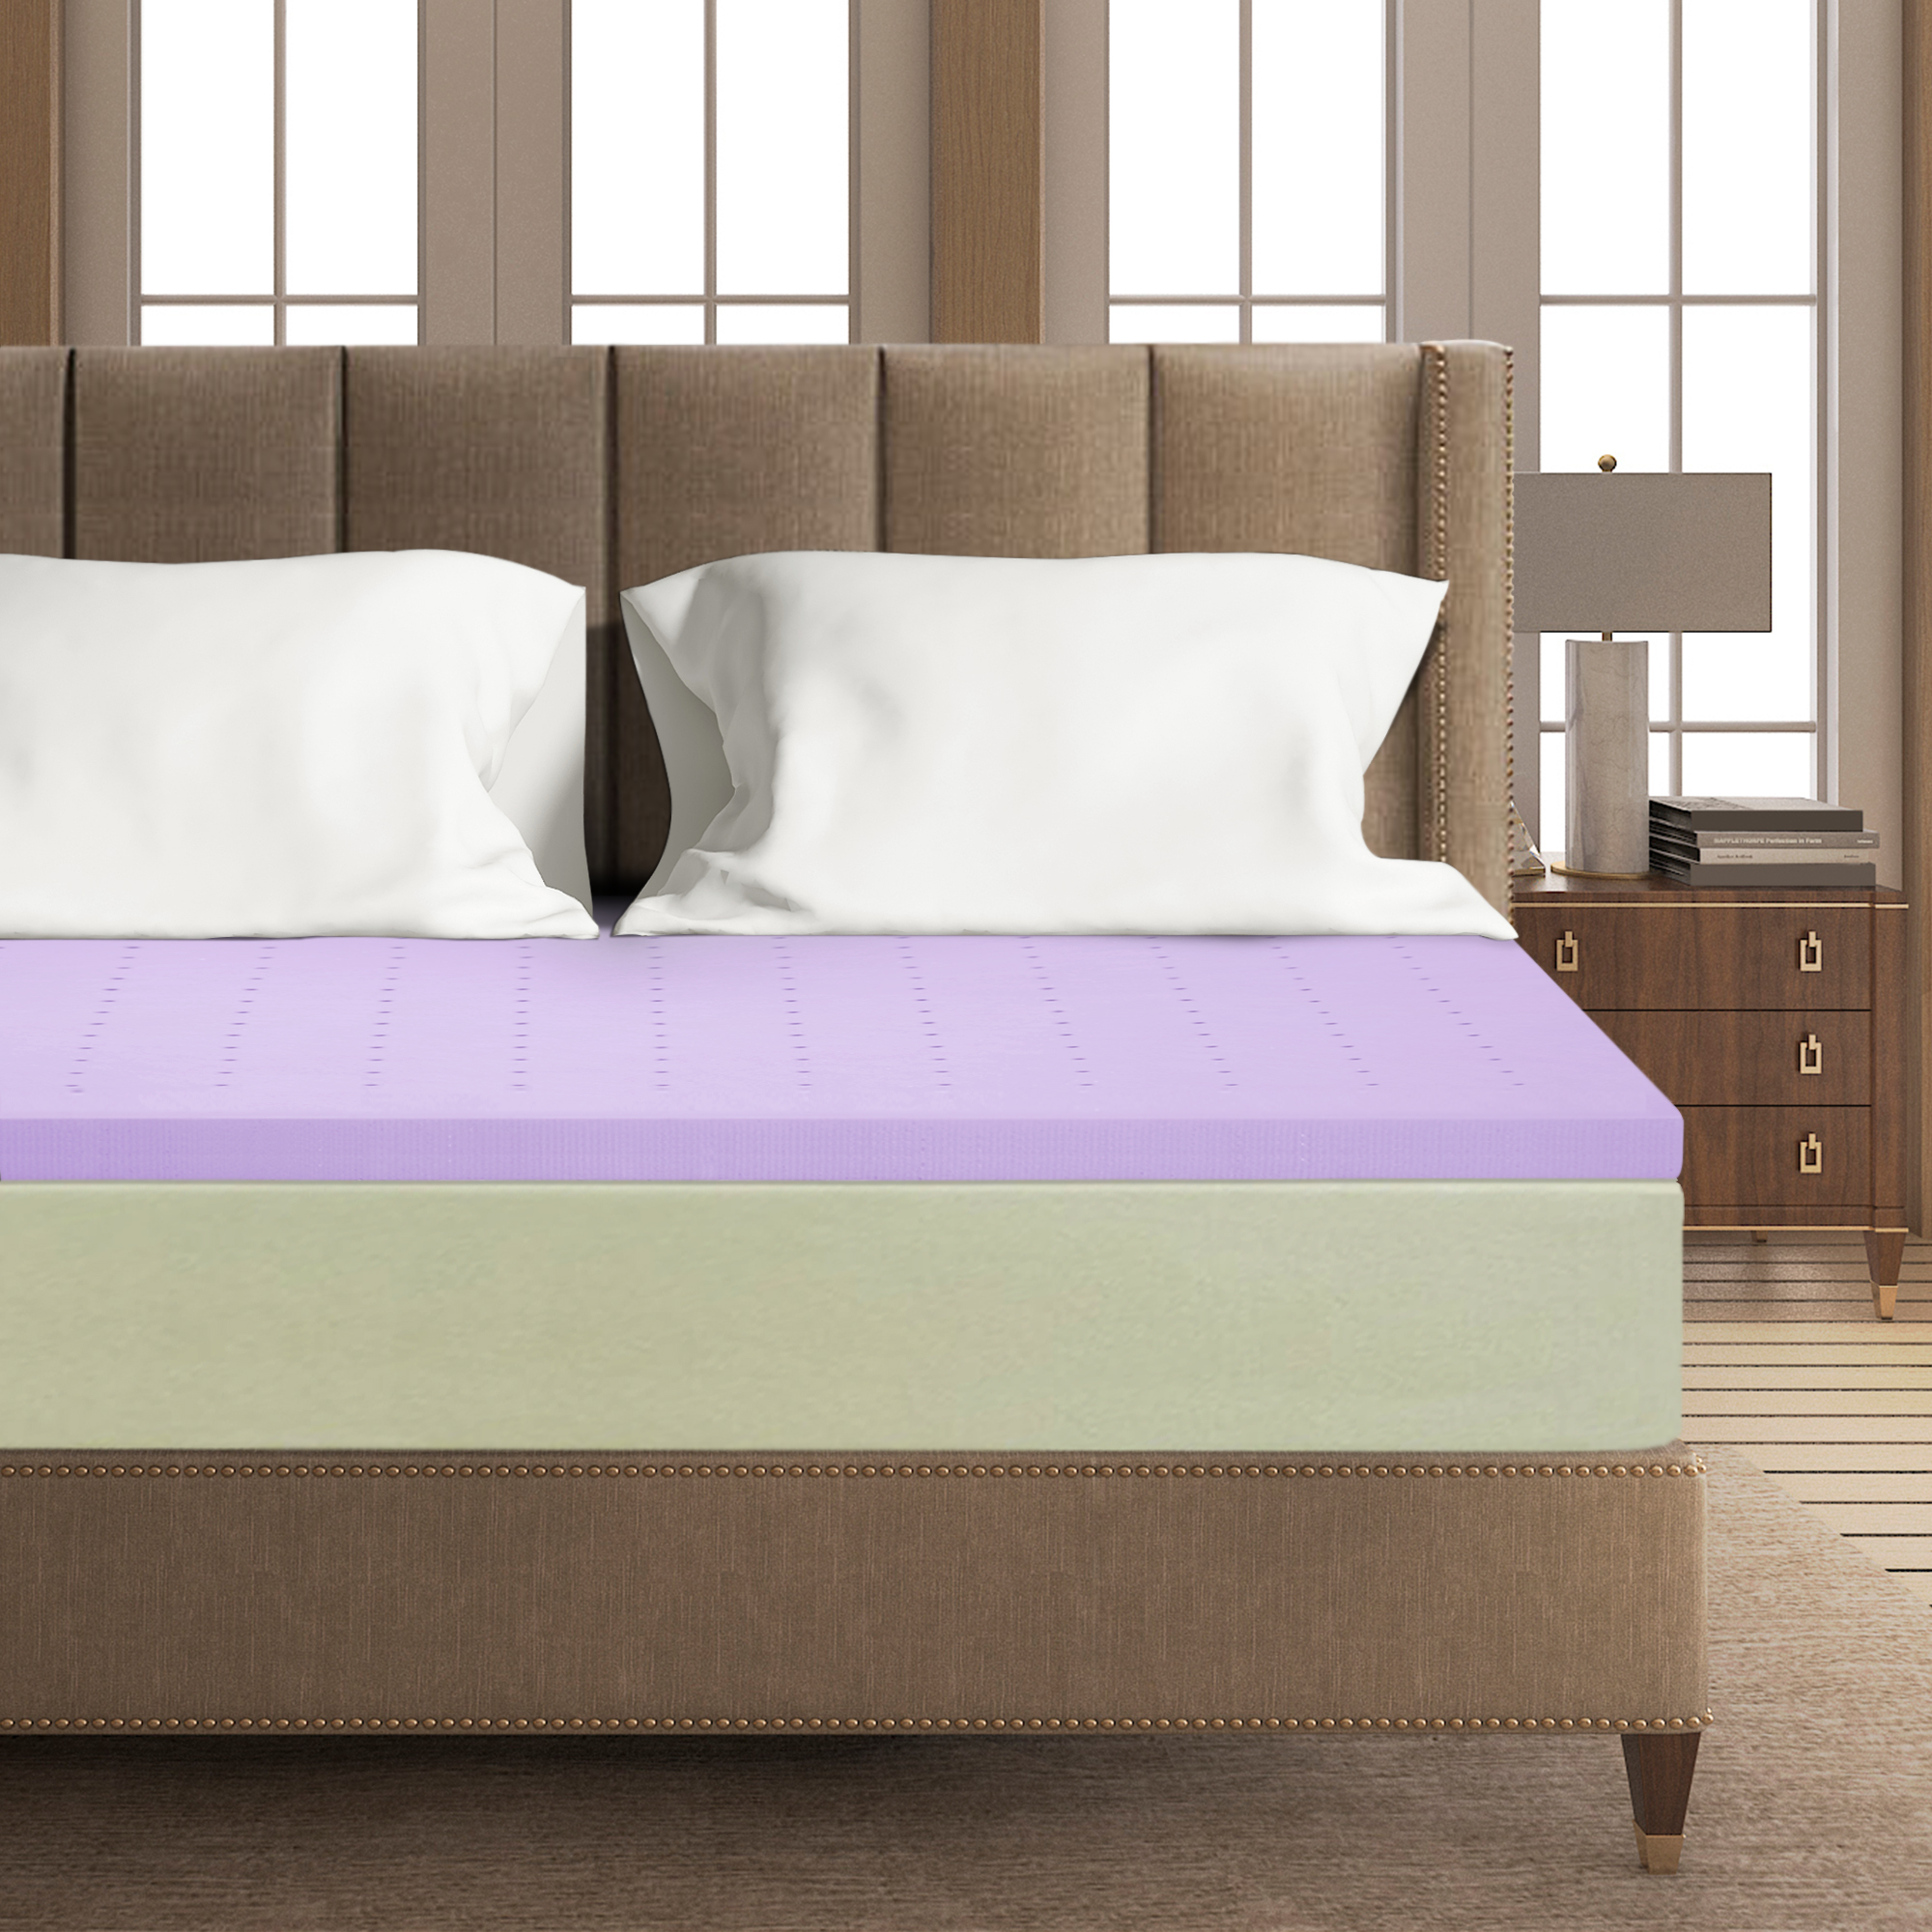 Click here to buy Best Price Mattress 2 Inch Lavender Memory Foam Mattress Topper by Best Price Mattress.